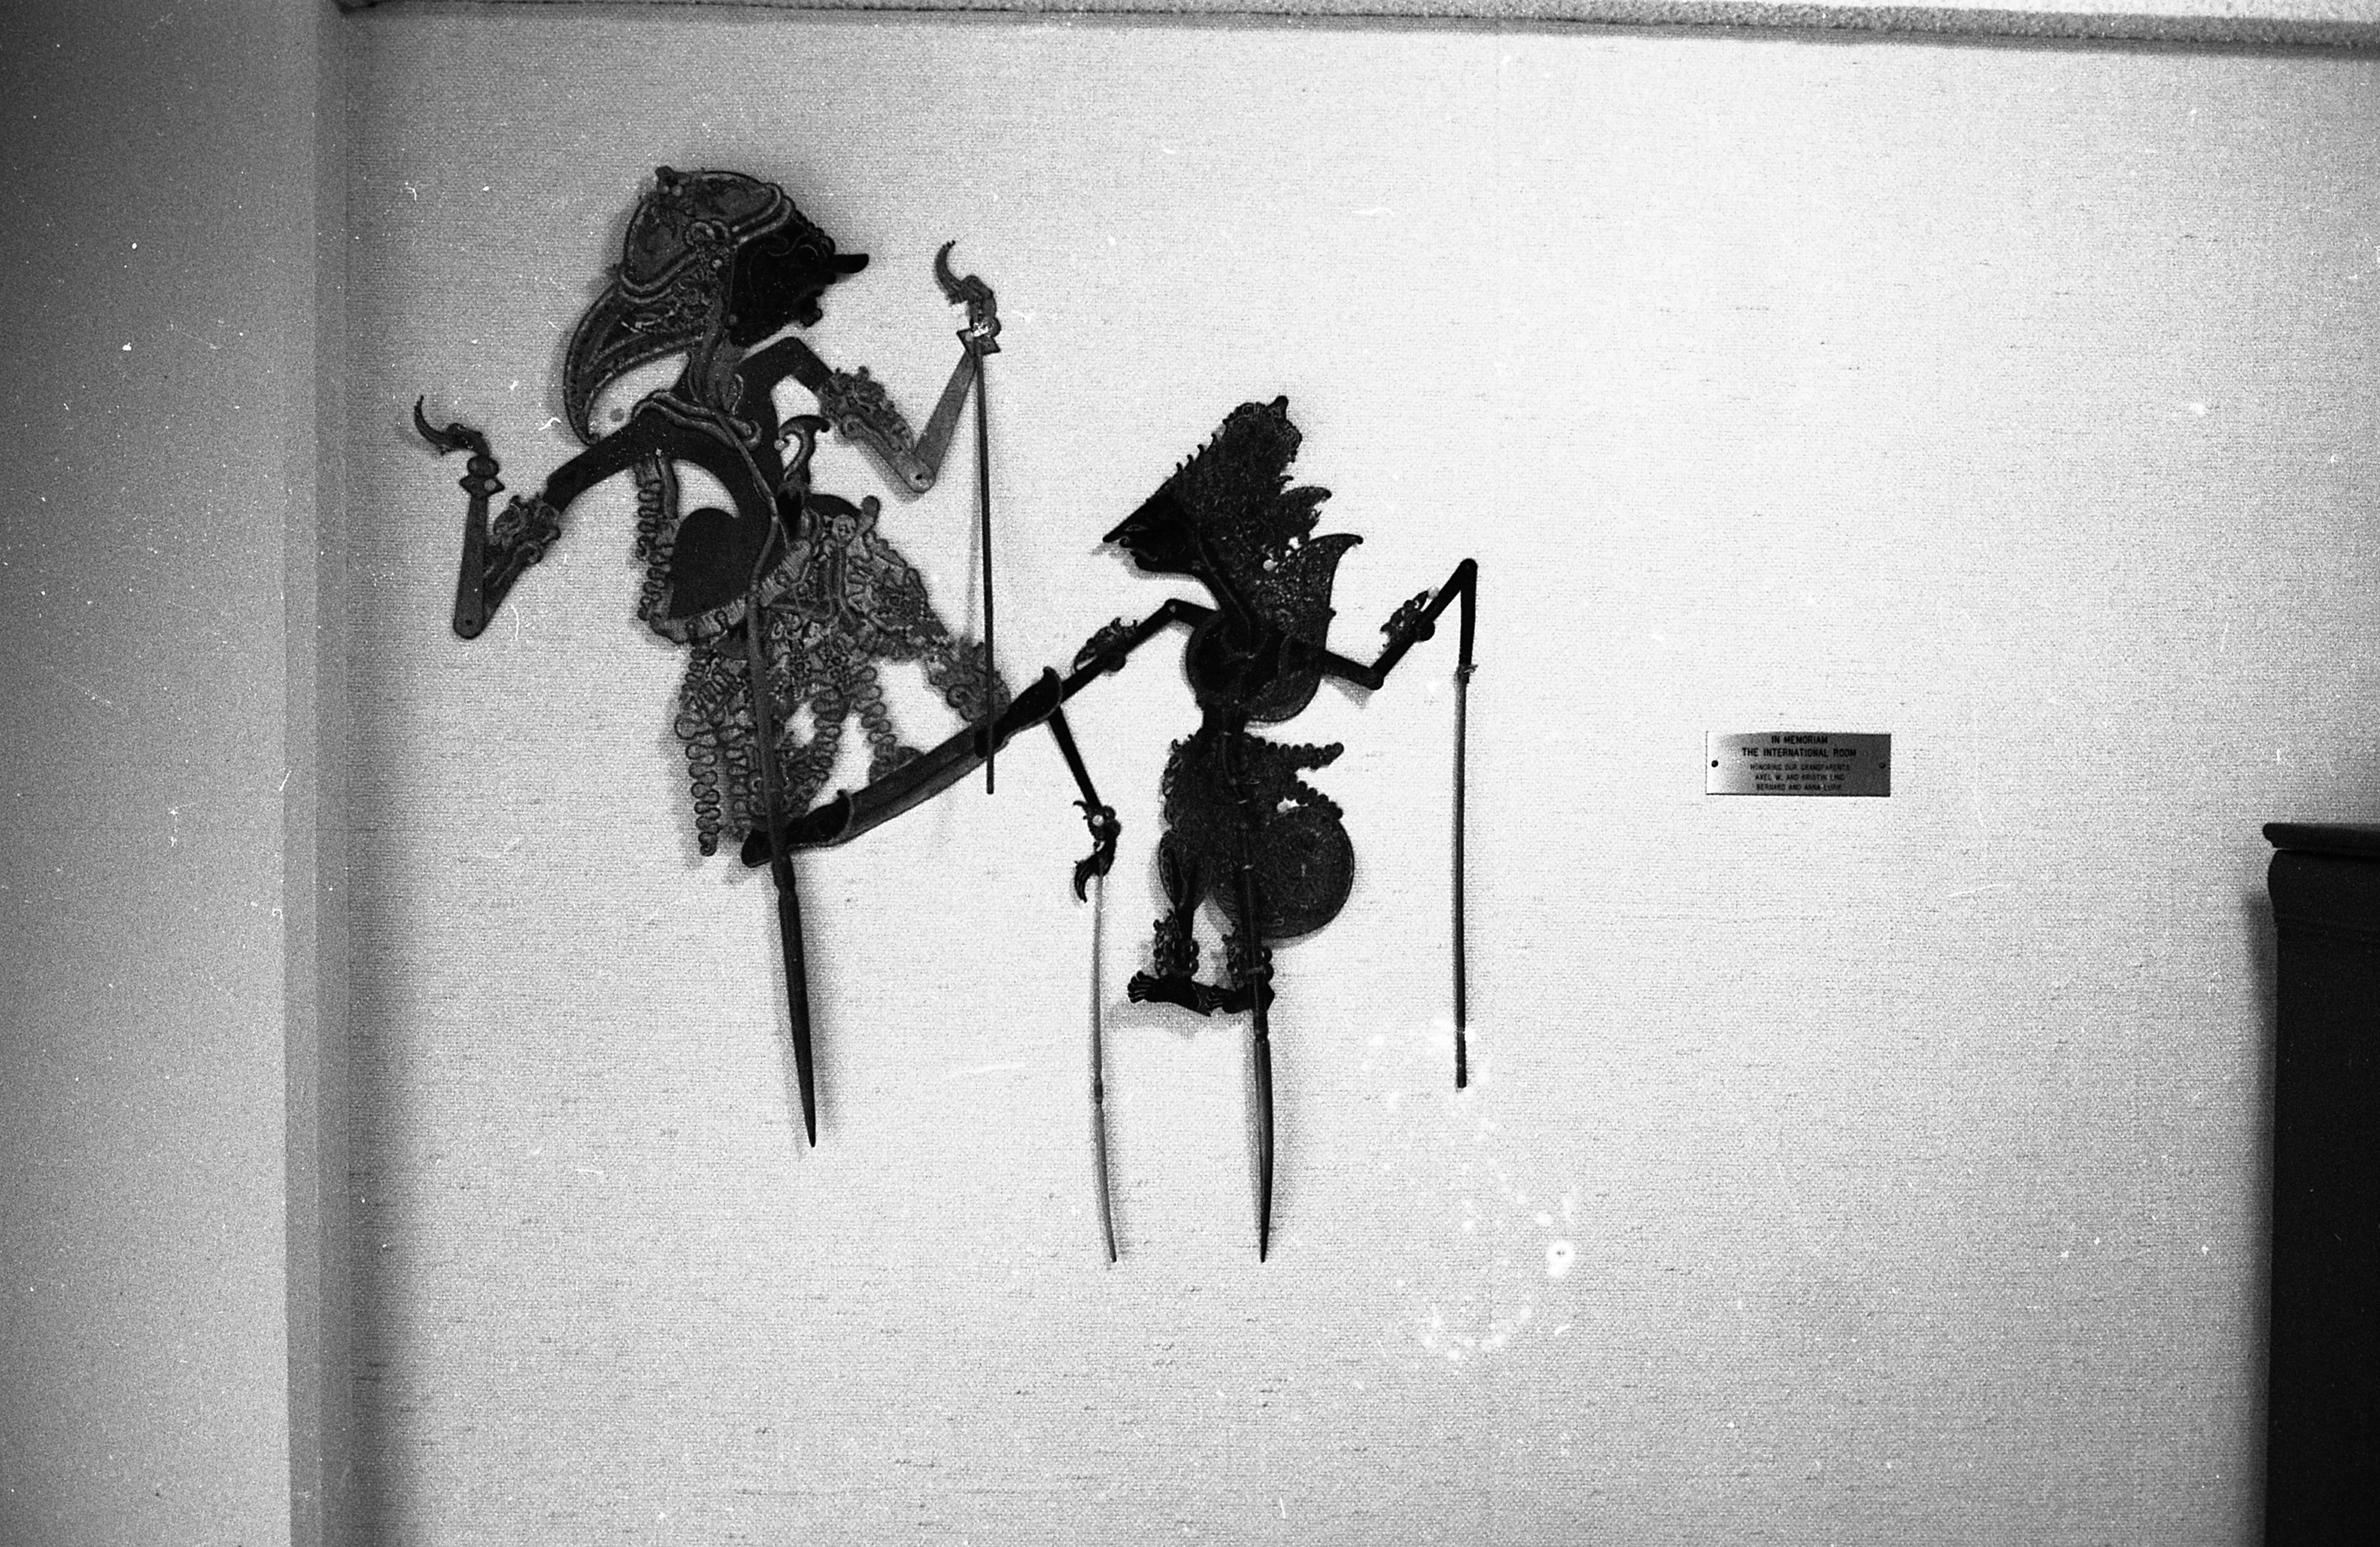 Indonesian Puppets On The Wall Of The Lucile Whitfield Lounge At Lurie Terrace, July 1965 image